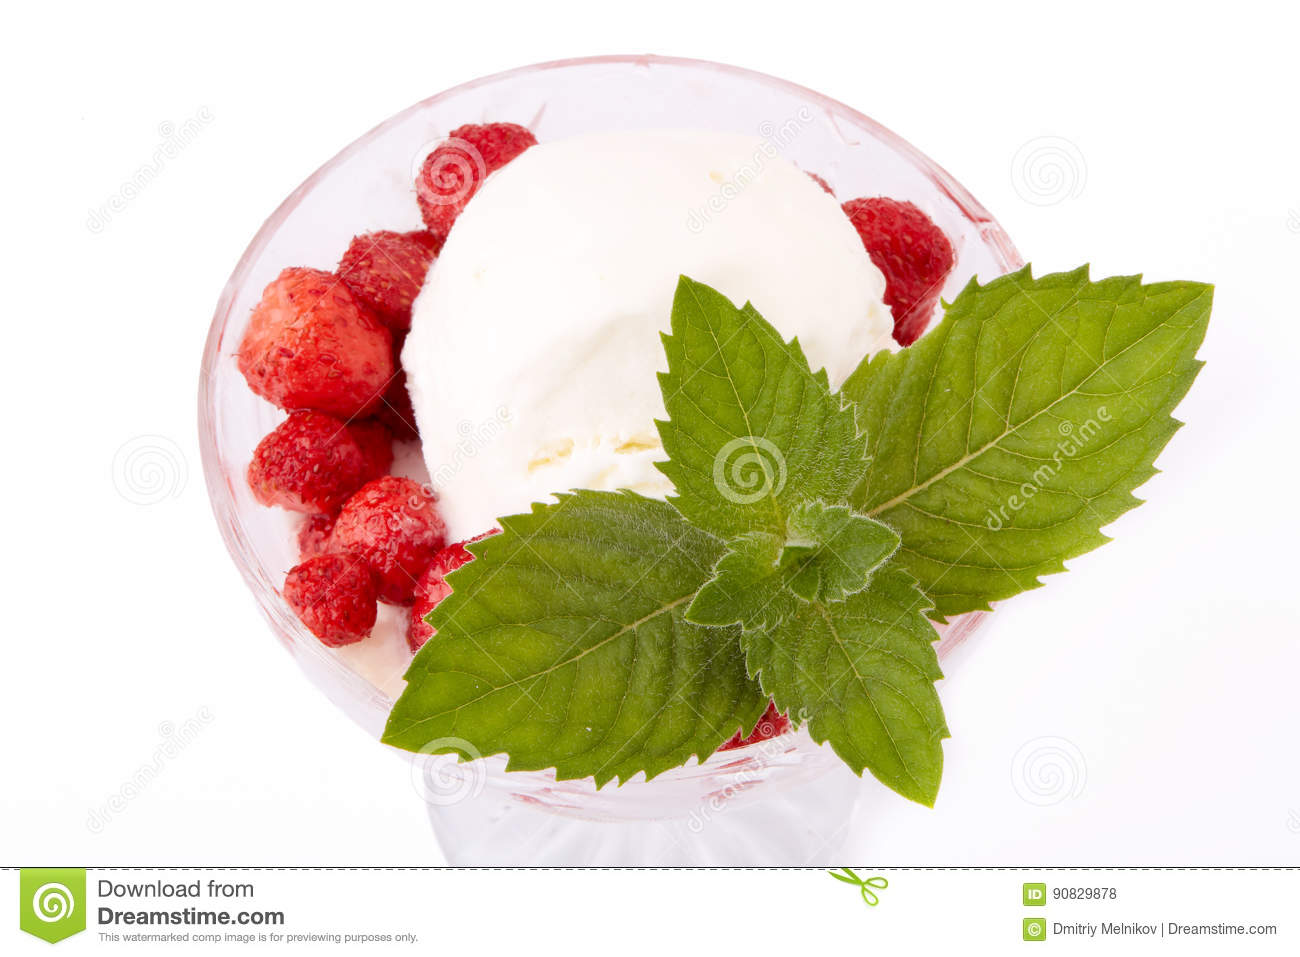 Ice-cream with fresh strawberries